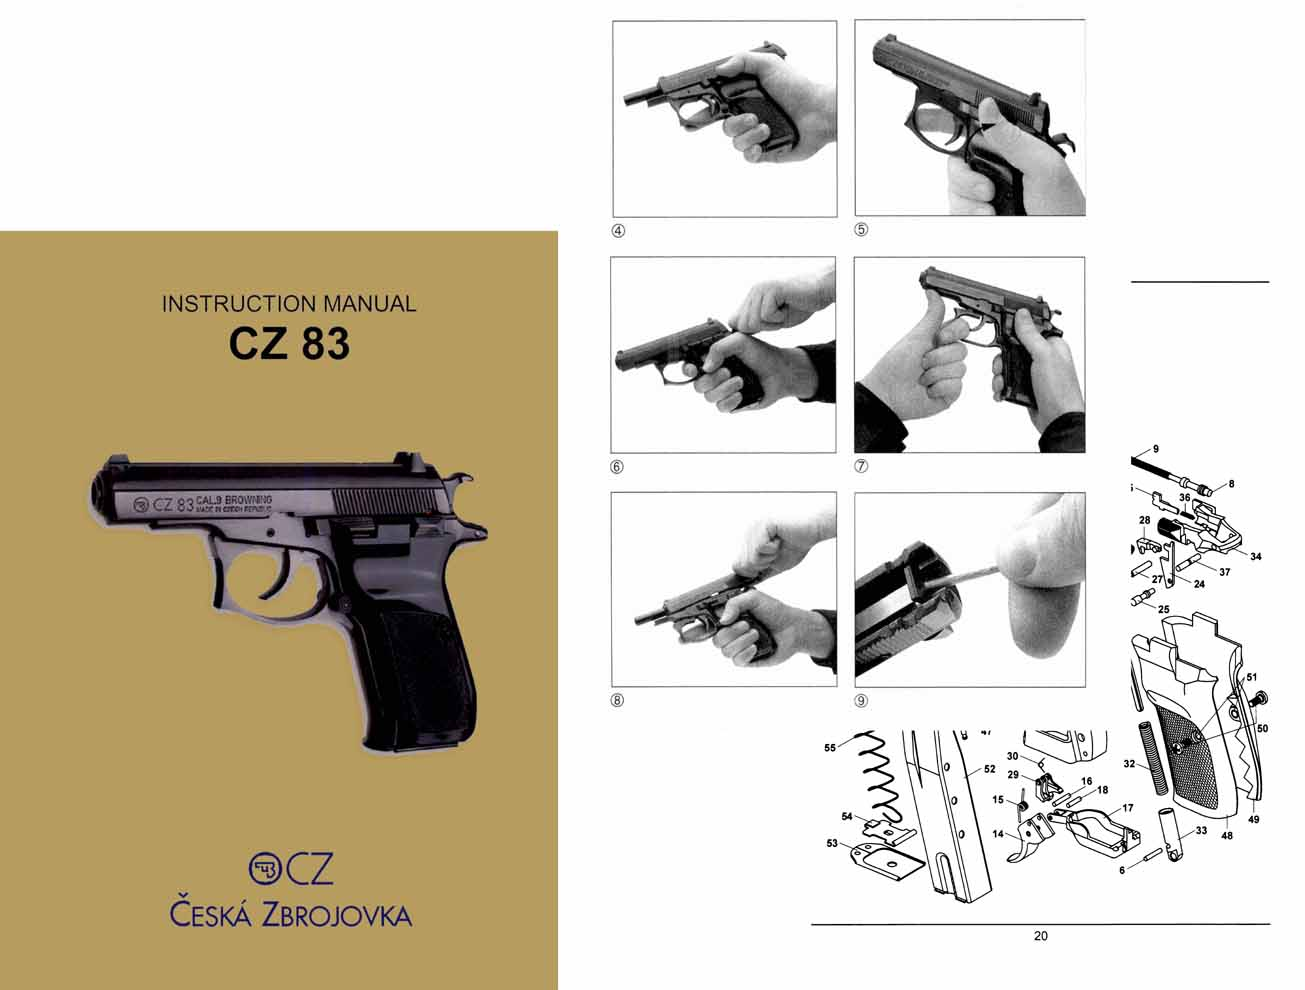 CZ-83 Double Action Czech Pistol Manual